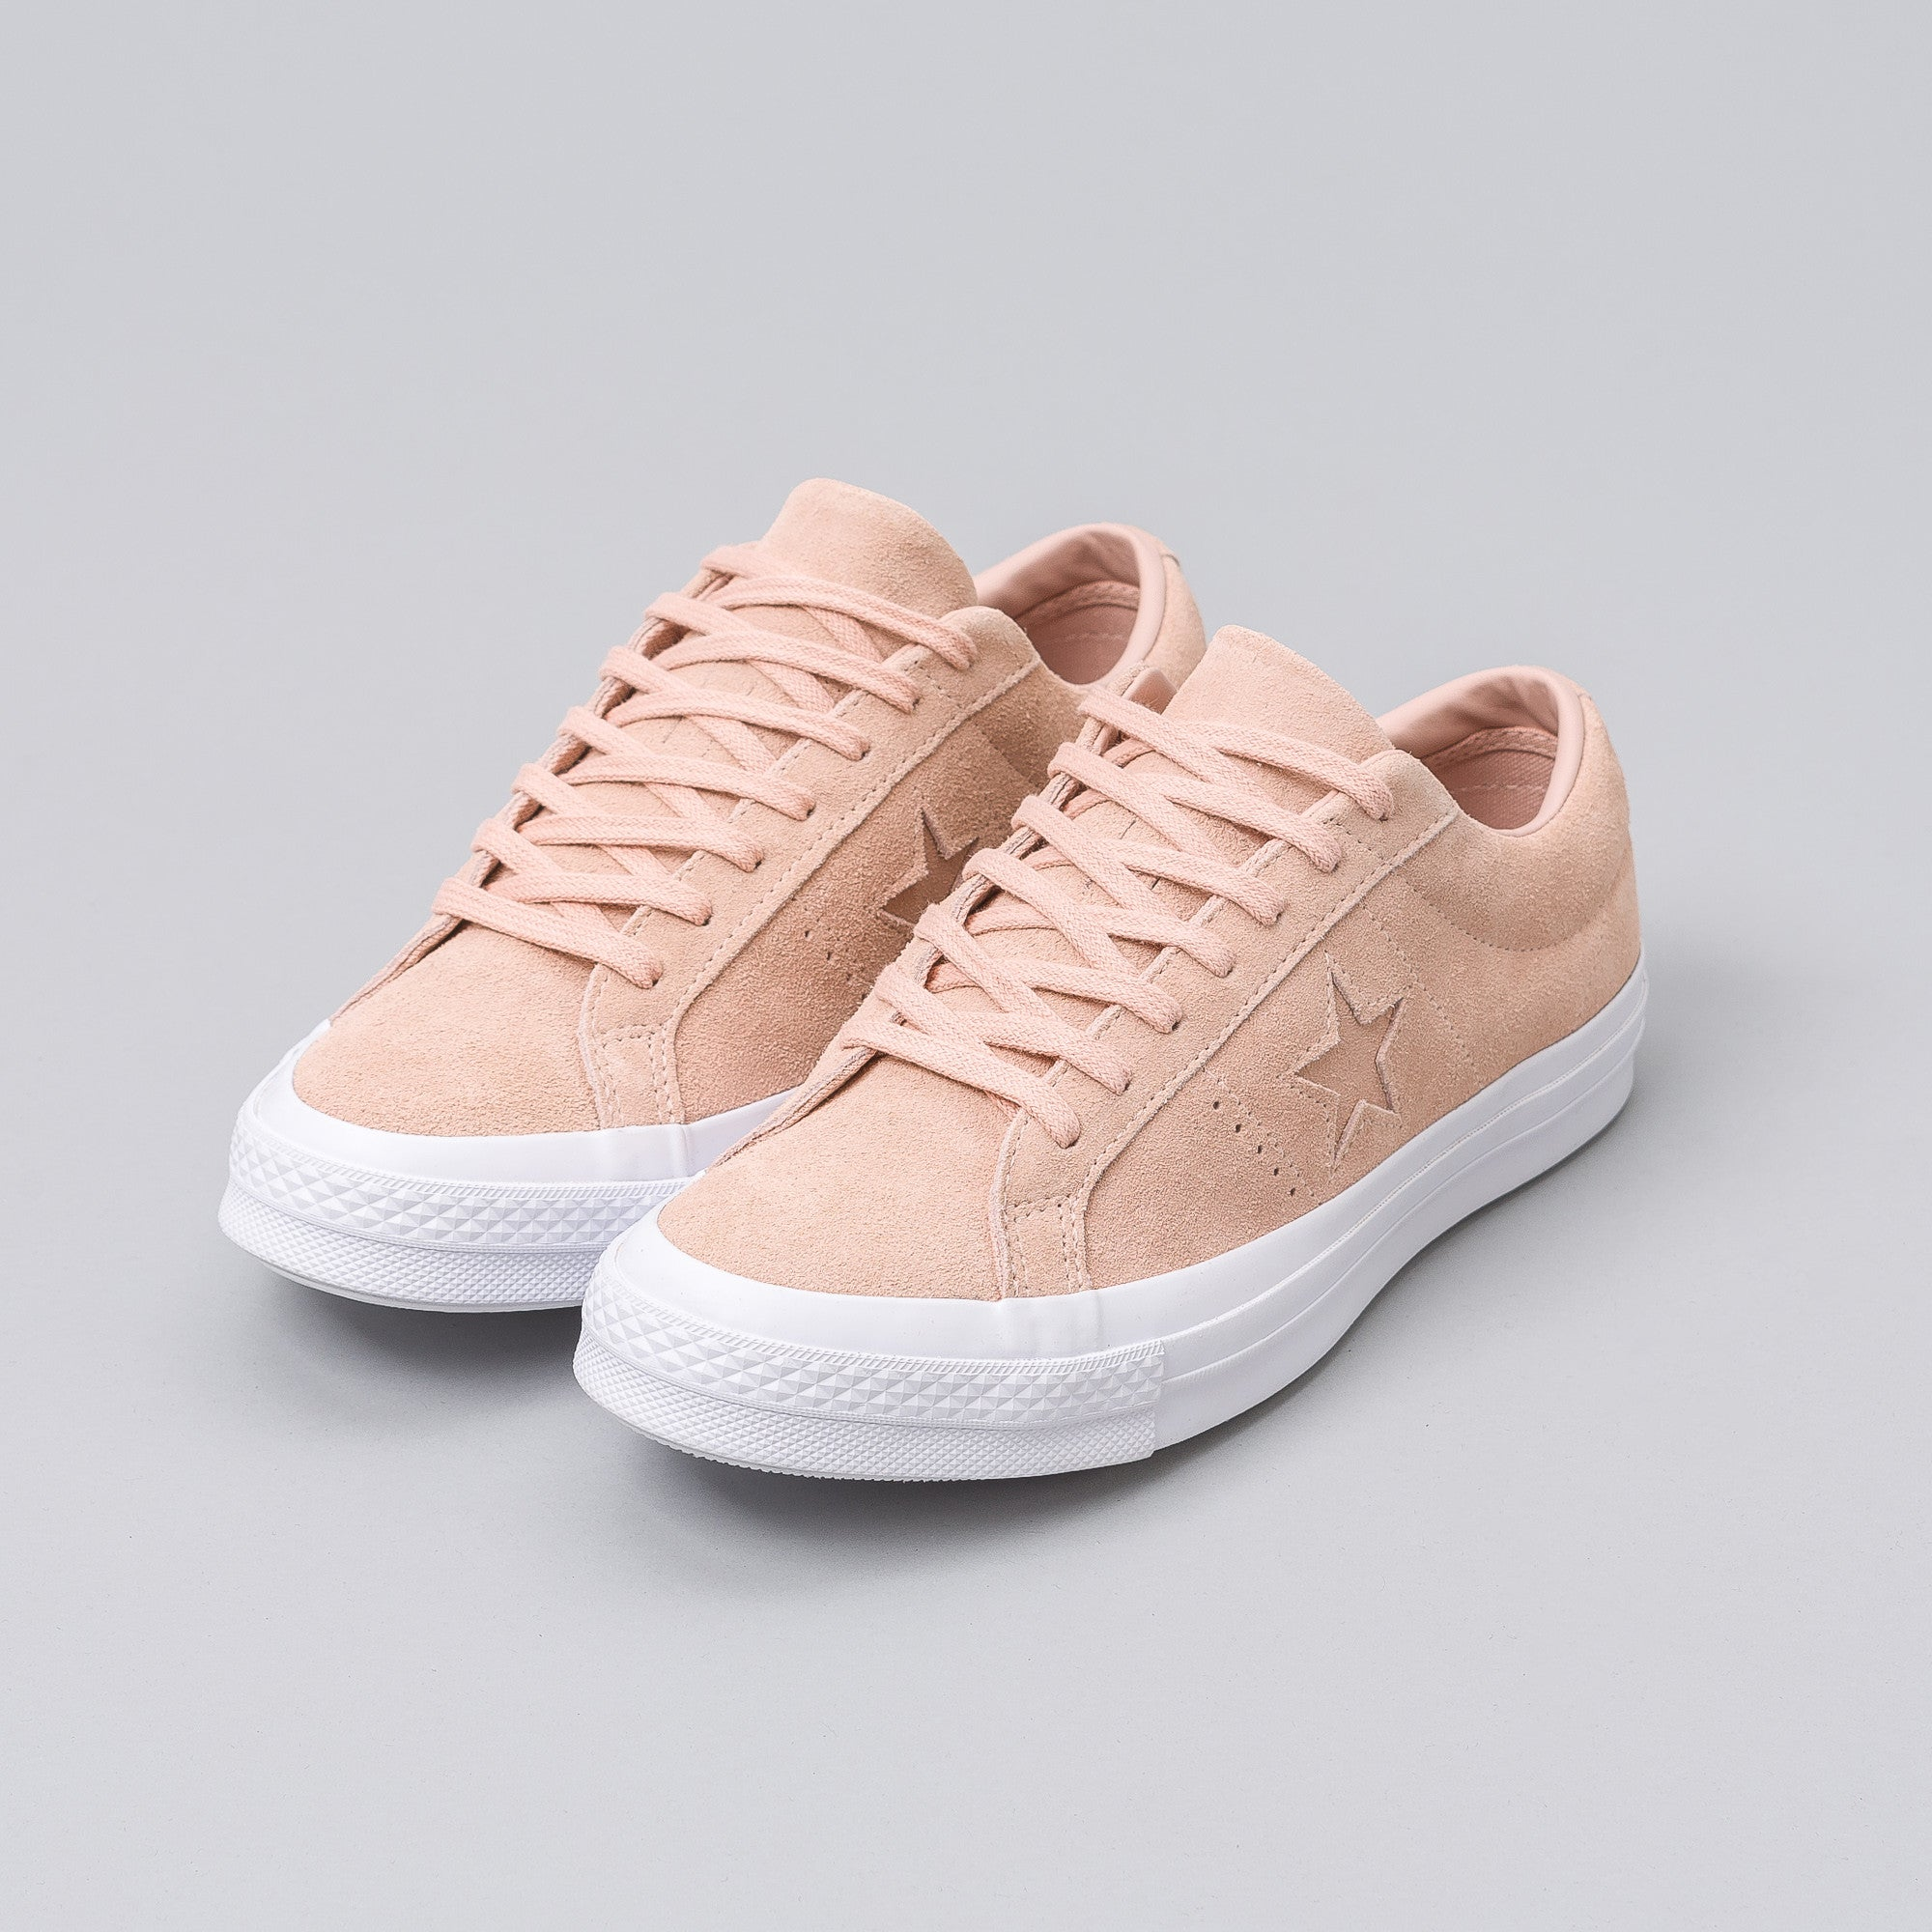 converse one star pink